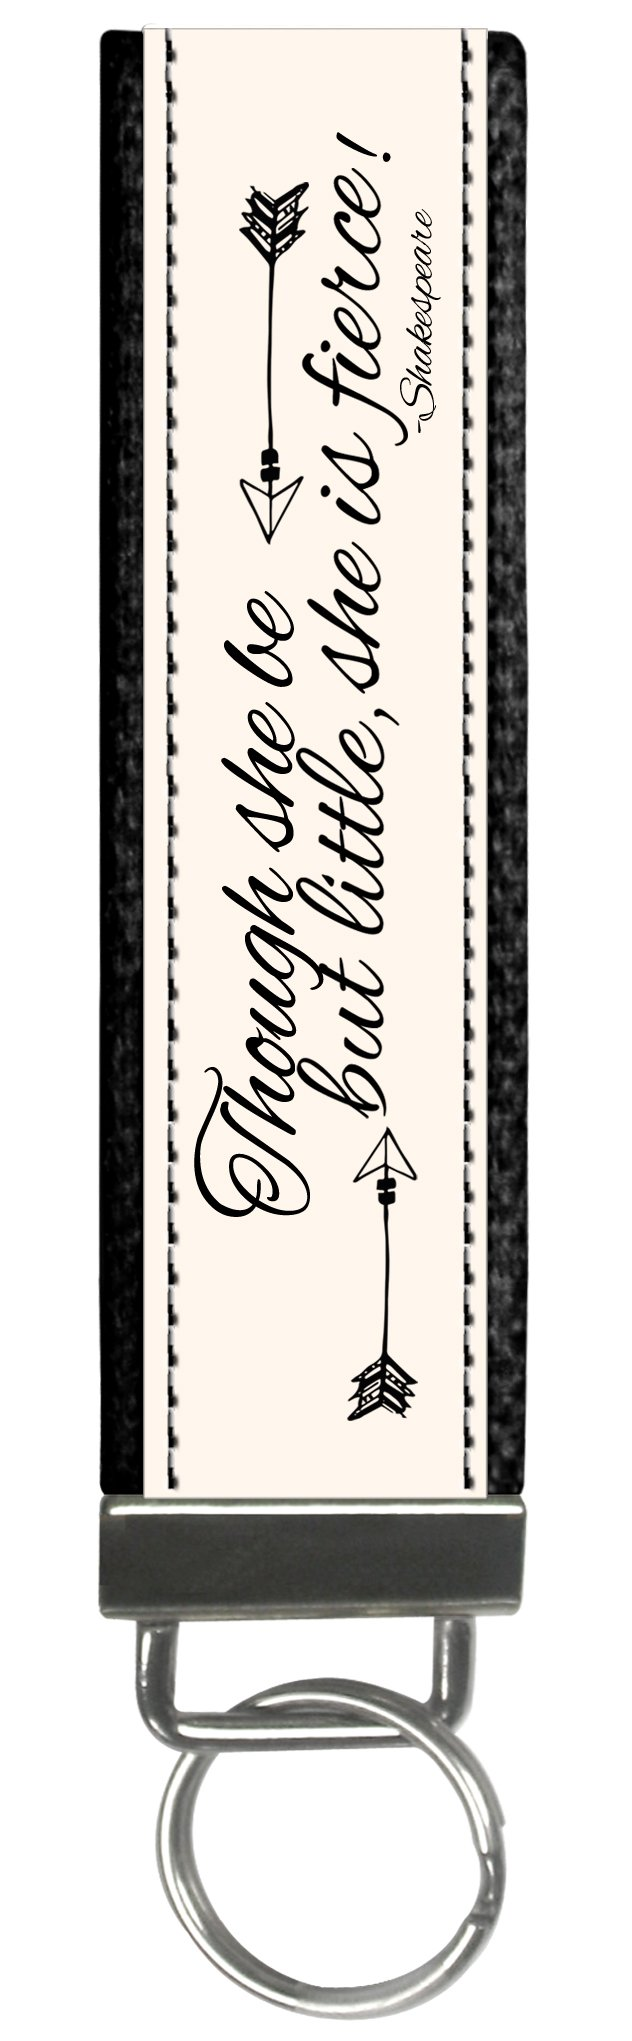 Snaptotes Trendy Motivational Shakespeare Though She May Be Little Wristlet Keychain